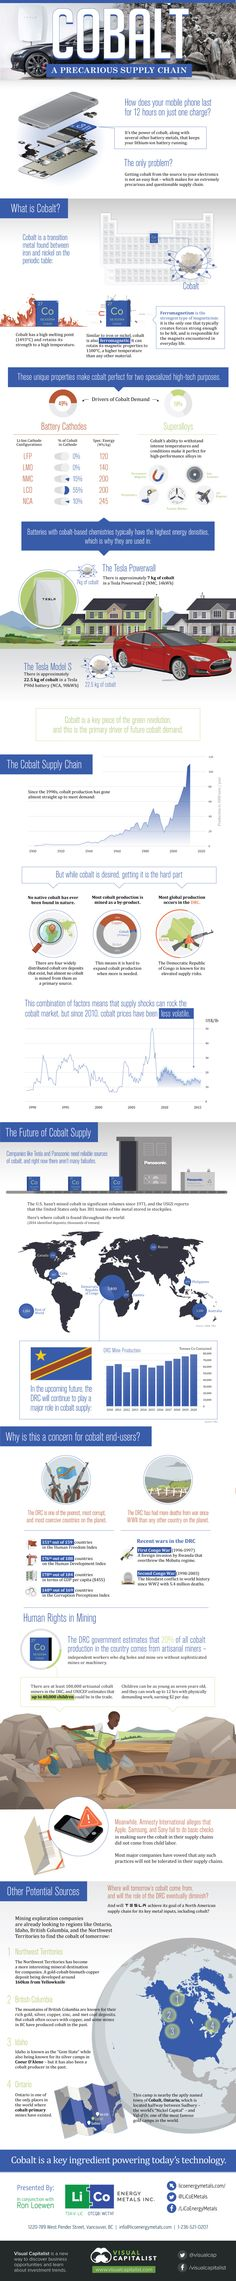 Cobalt: A Precarious Supply Chain Green Technology, World Economic Forum, Energy Use, Global Economy, Sustainable Development, Supply Chain, Natural Disasters, Renewable Energy, Mind Blown